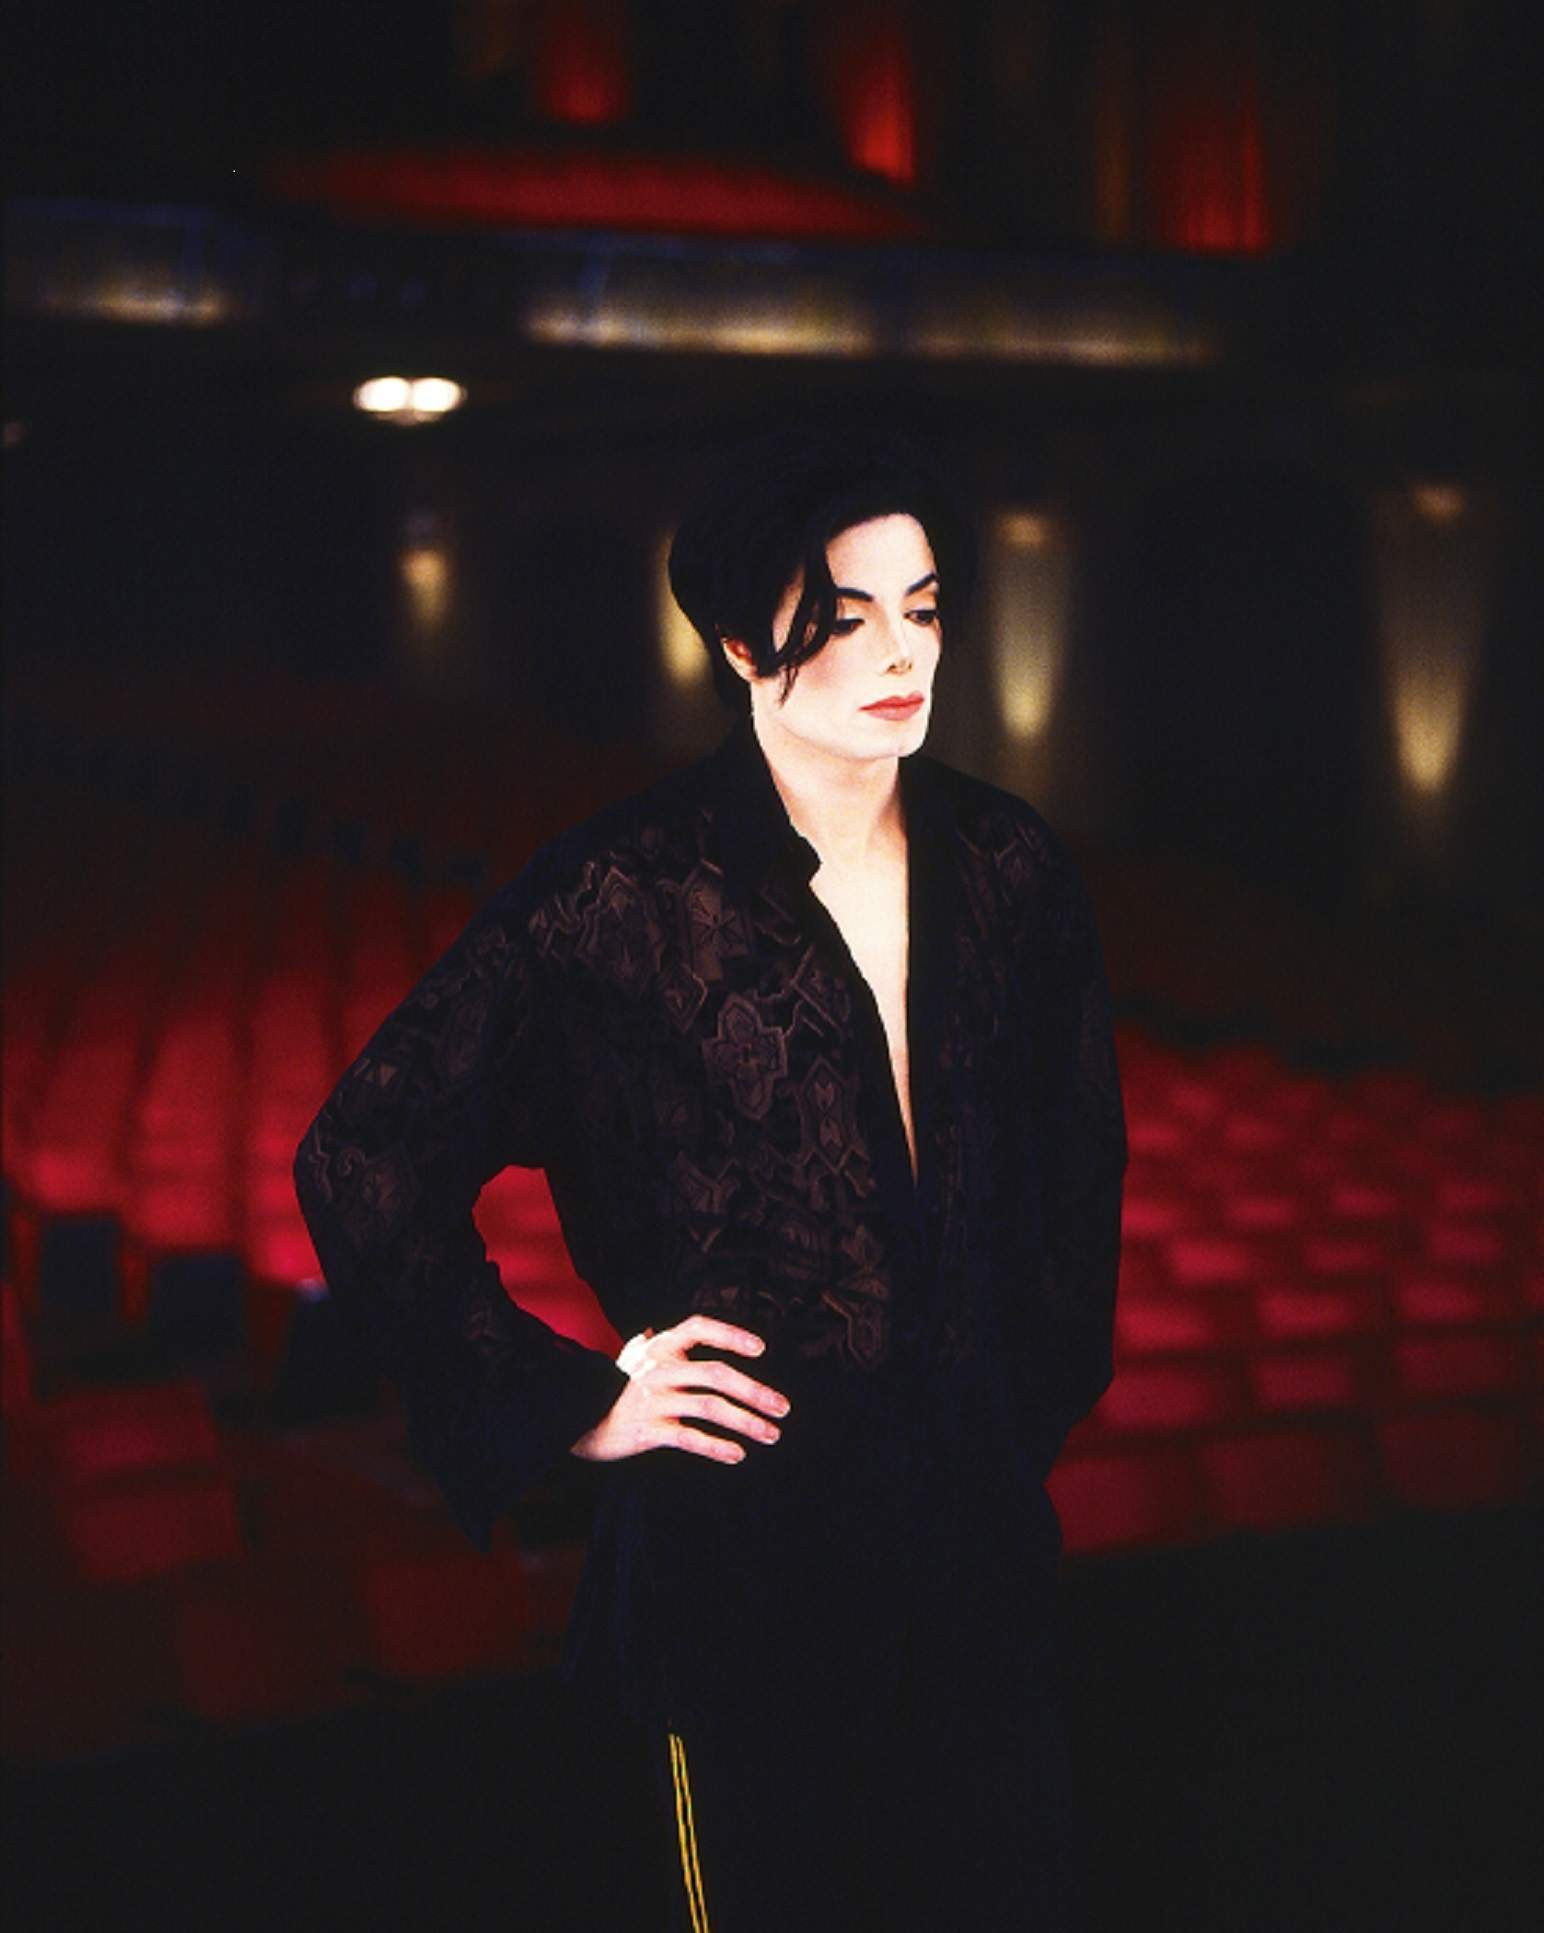 You Are Not Alone Michael Jackson : alone, michael, jackson, Alone..., MichaelJackson